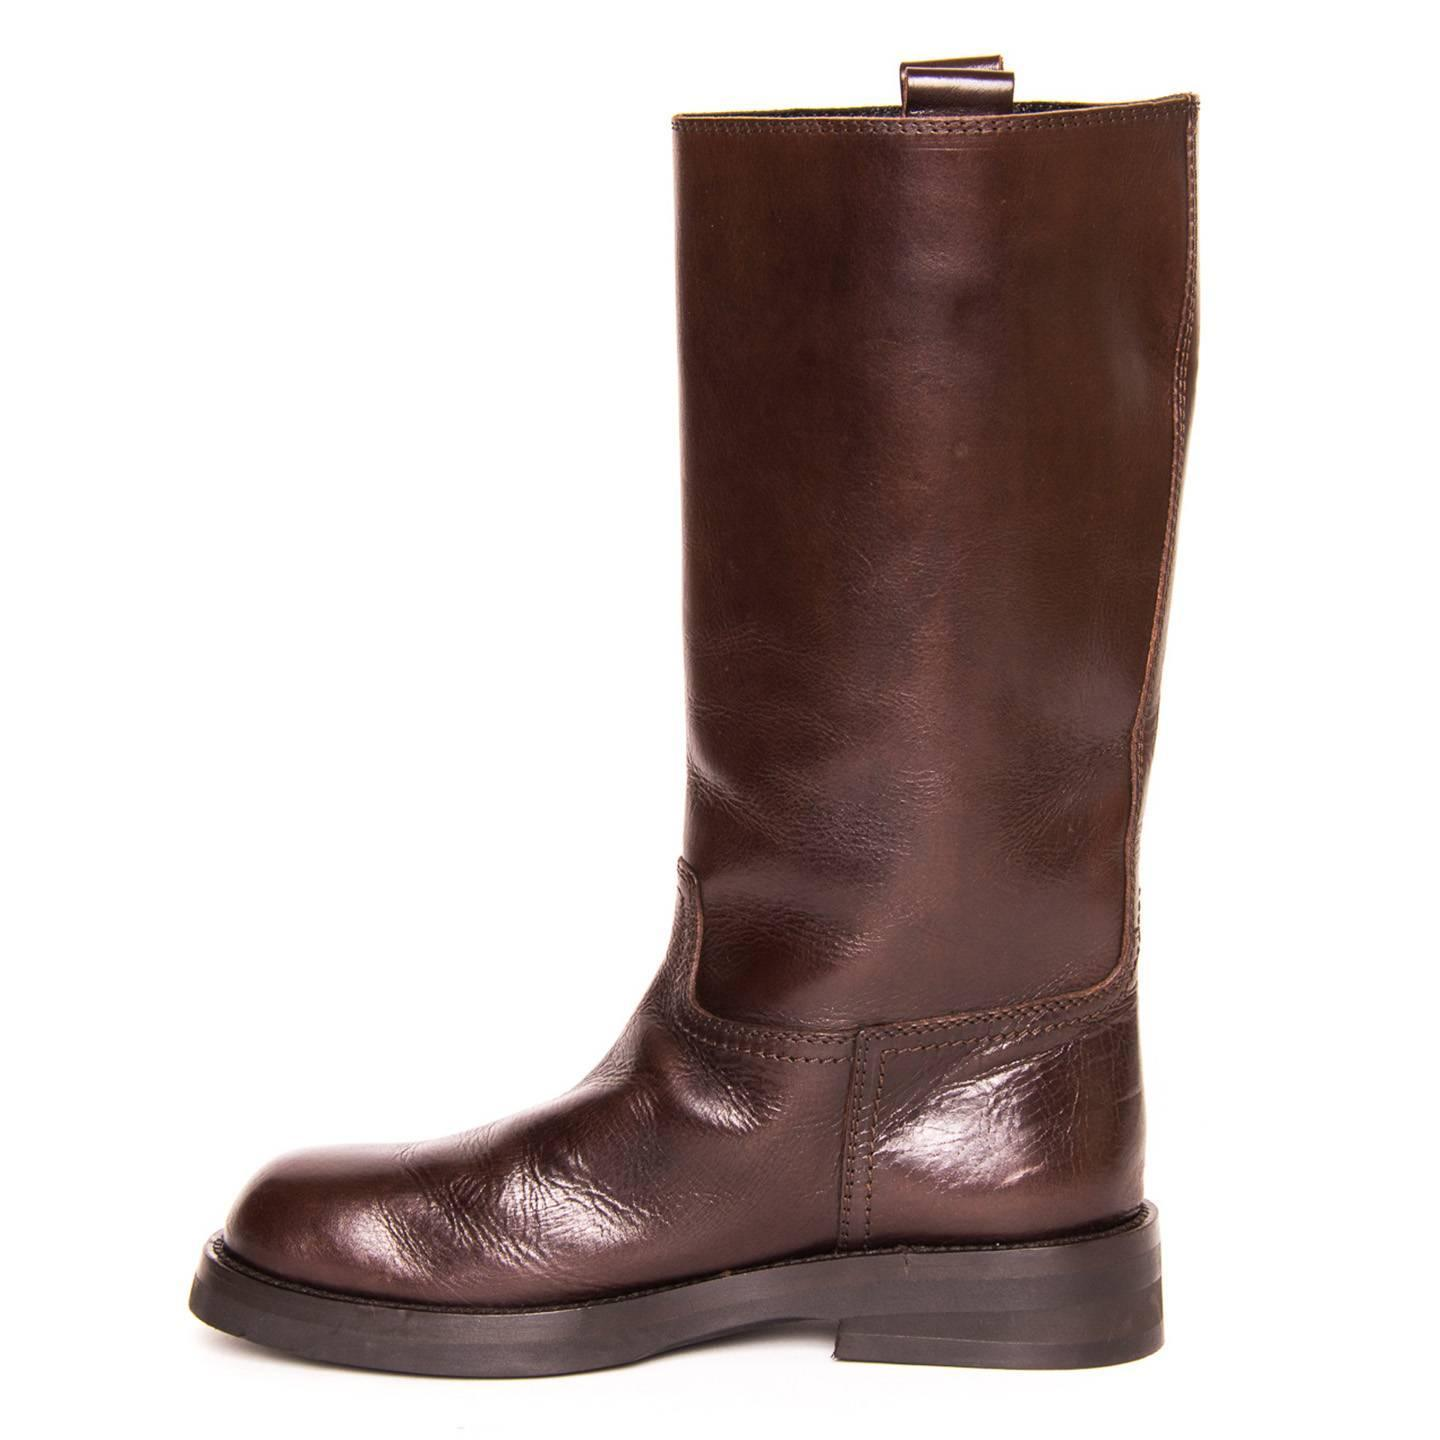 demeulemeester chocolate brown leather boots for sale